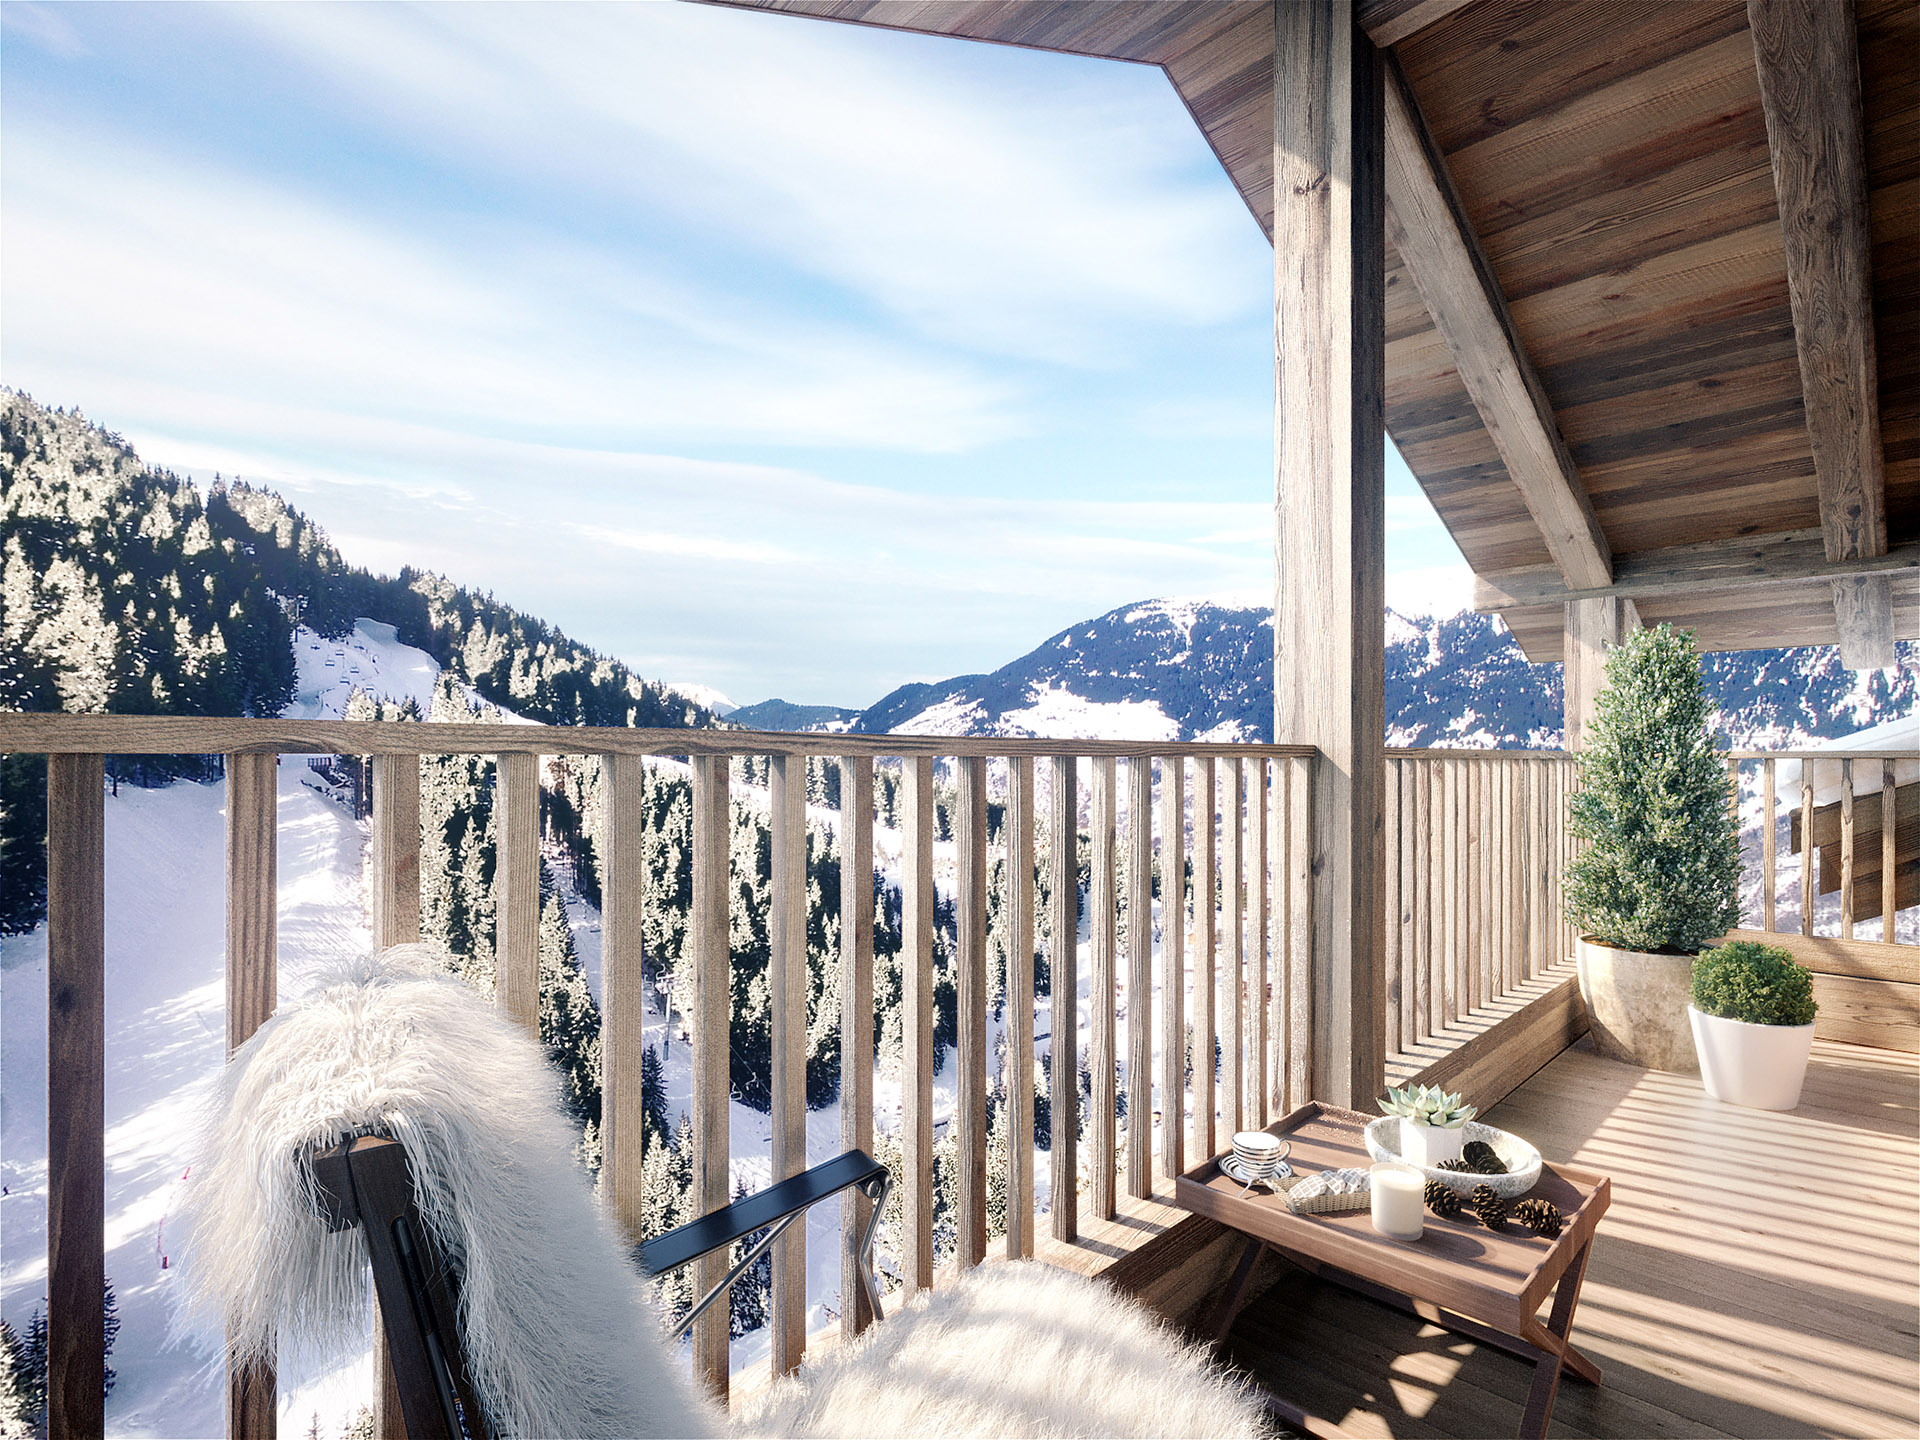 3D computer graphics of the terrace of a mountain chalet